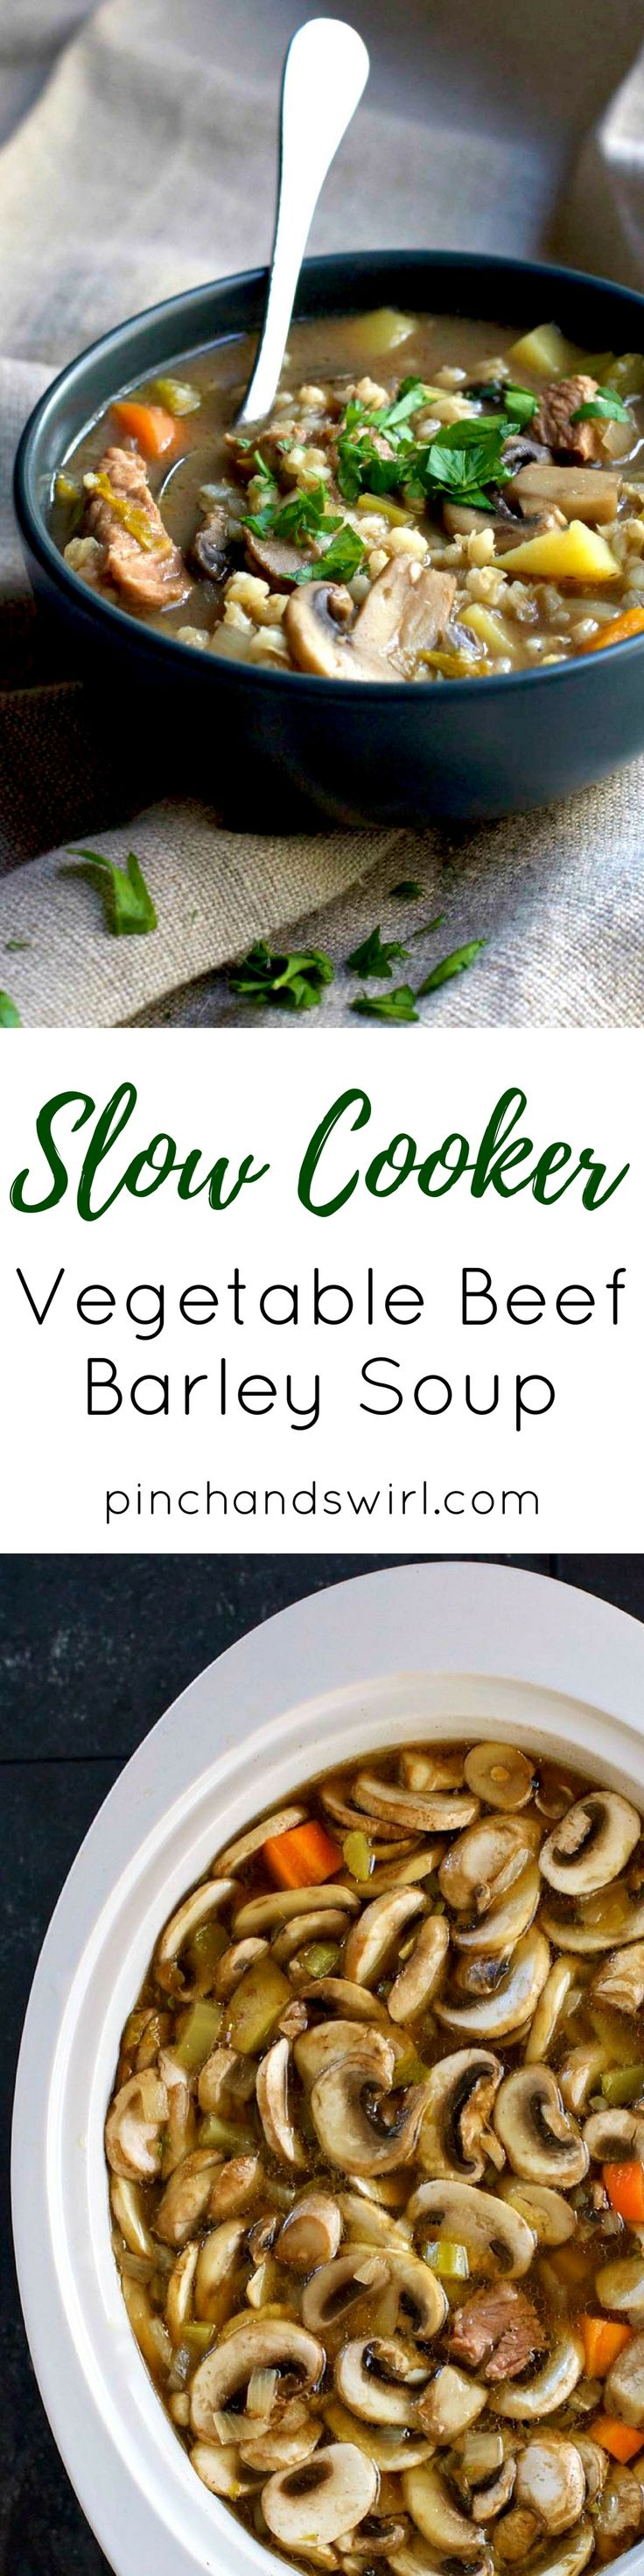 No meat searing required!! Homemade Slow Cooker Vegetable Beef Barley Soup is perfect winter comfort food and just 10 minutes of prep!